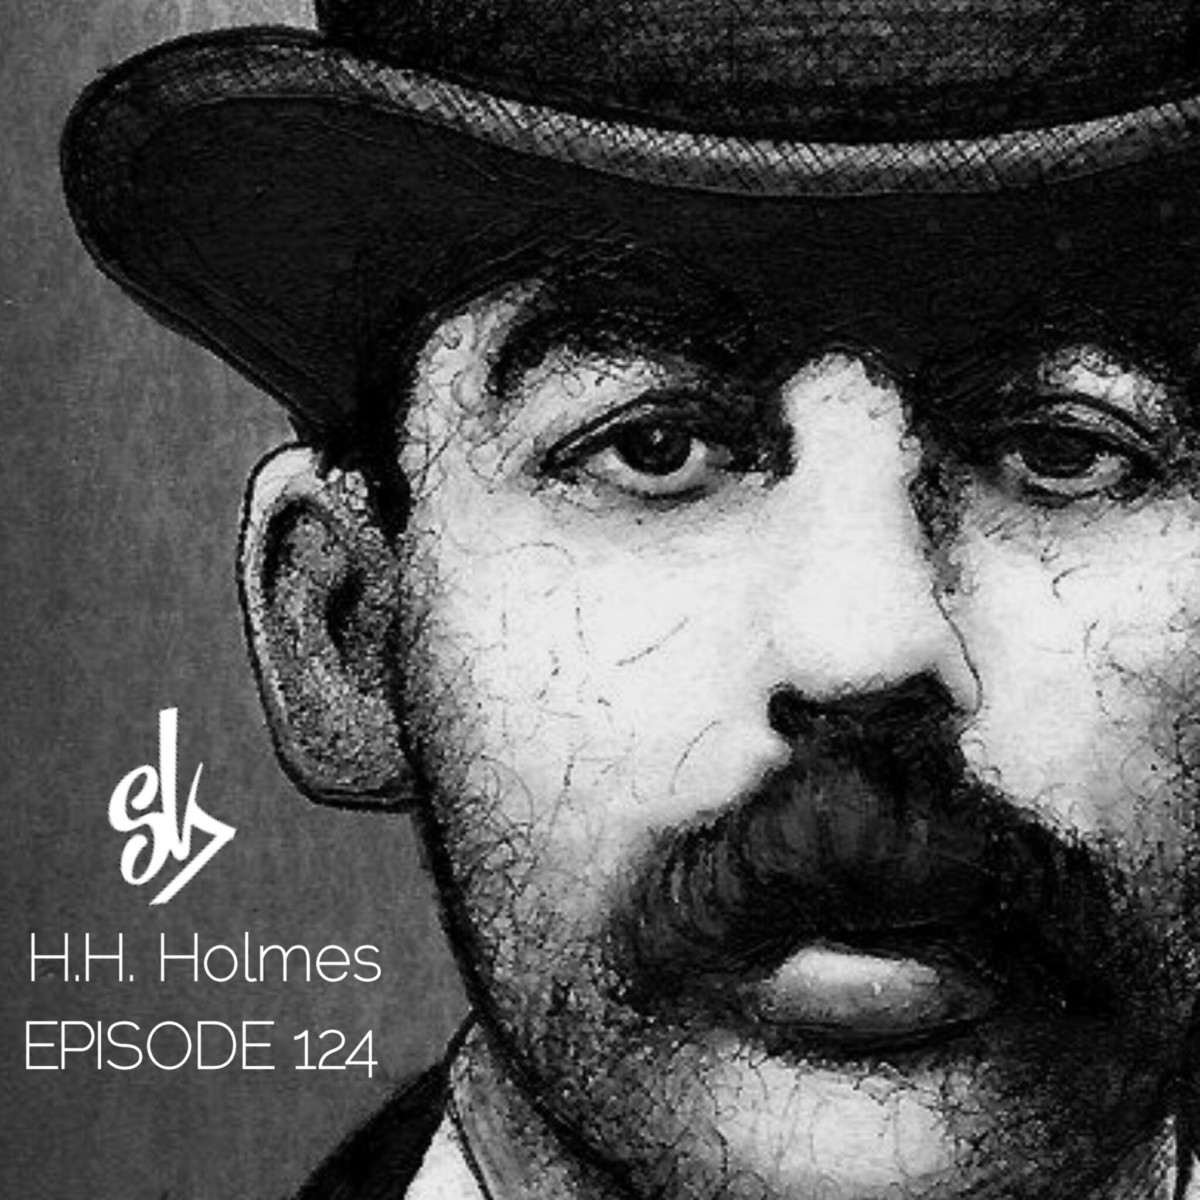 sofa king podcast white leather reviews episode 124: h.h. holmes: beast of chicago -